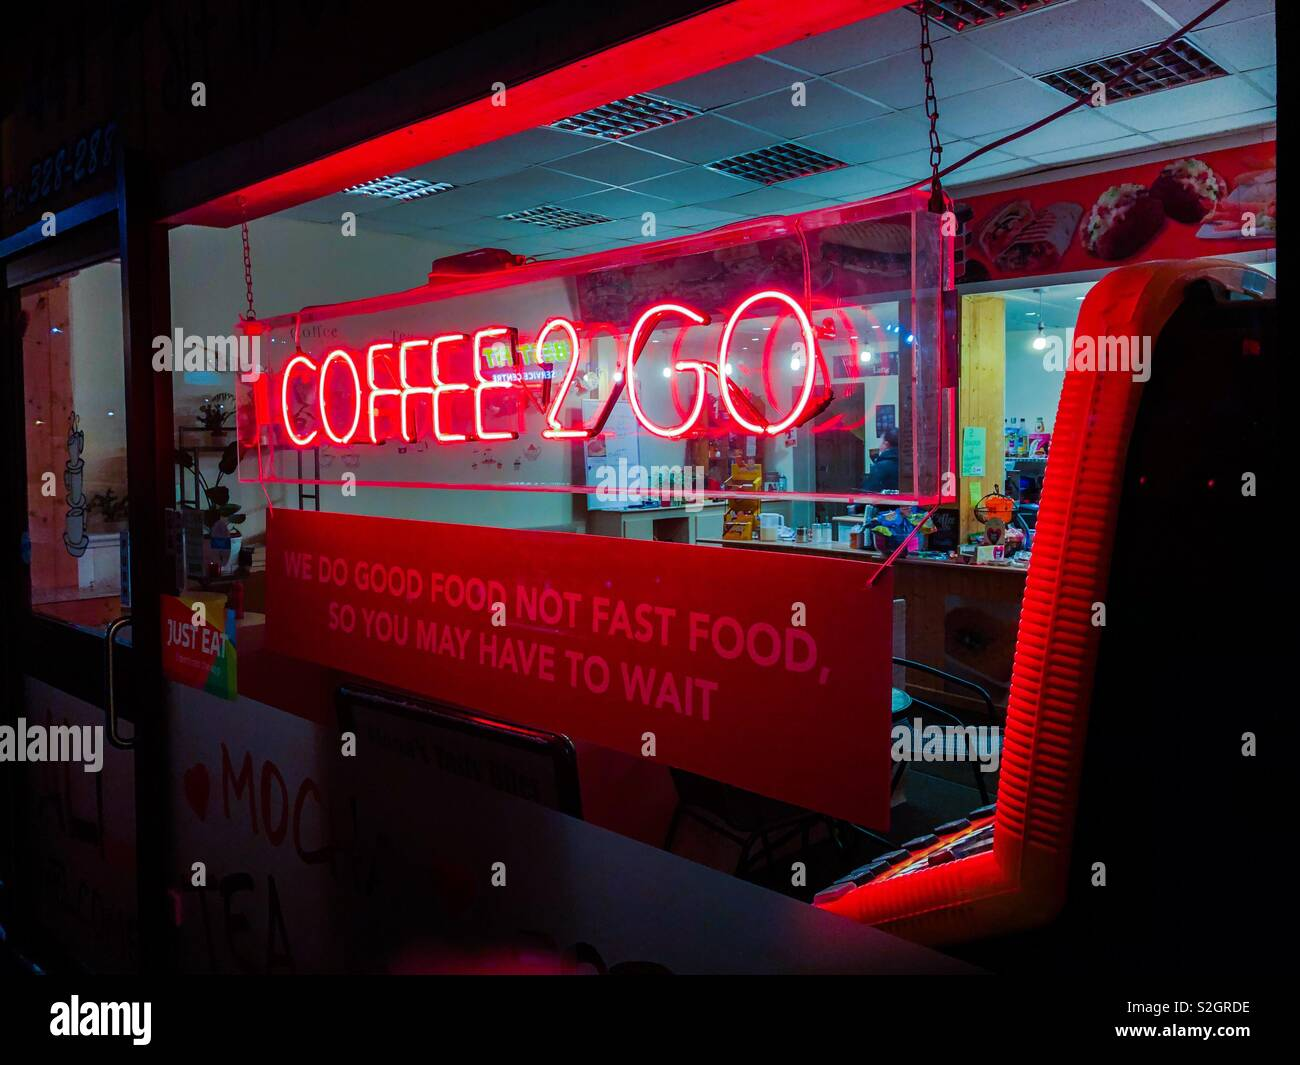 Coffee 2 Go neon sign. Glasgow. Scotland. UK. - Stock Image